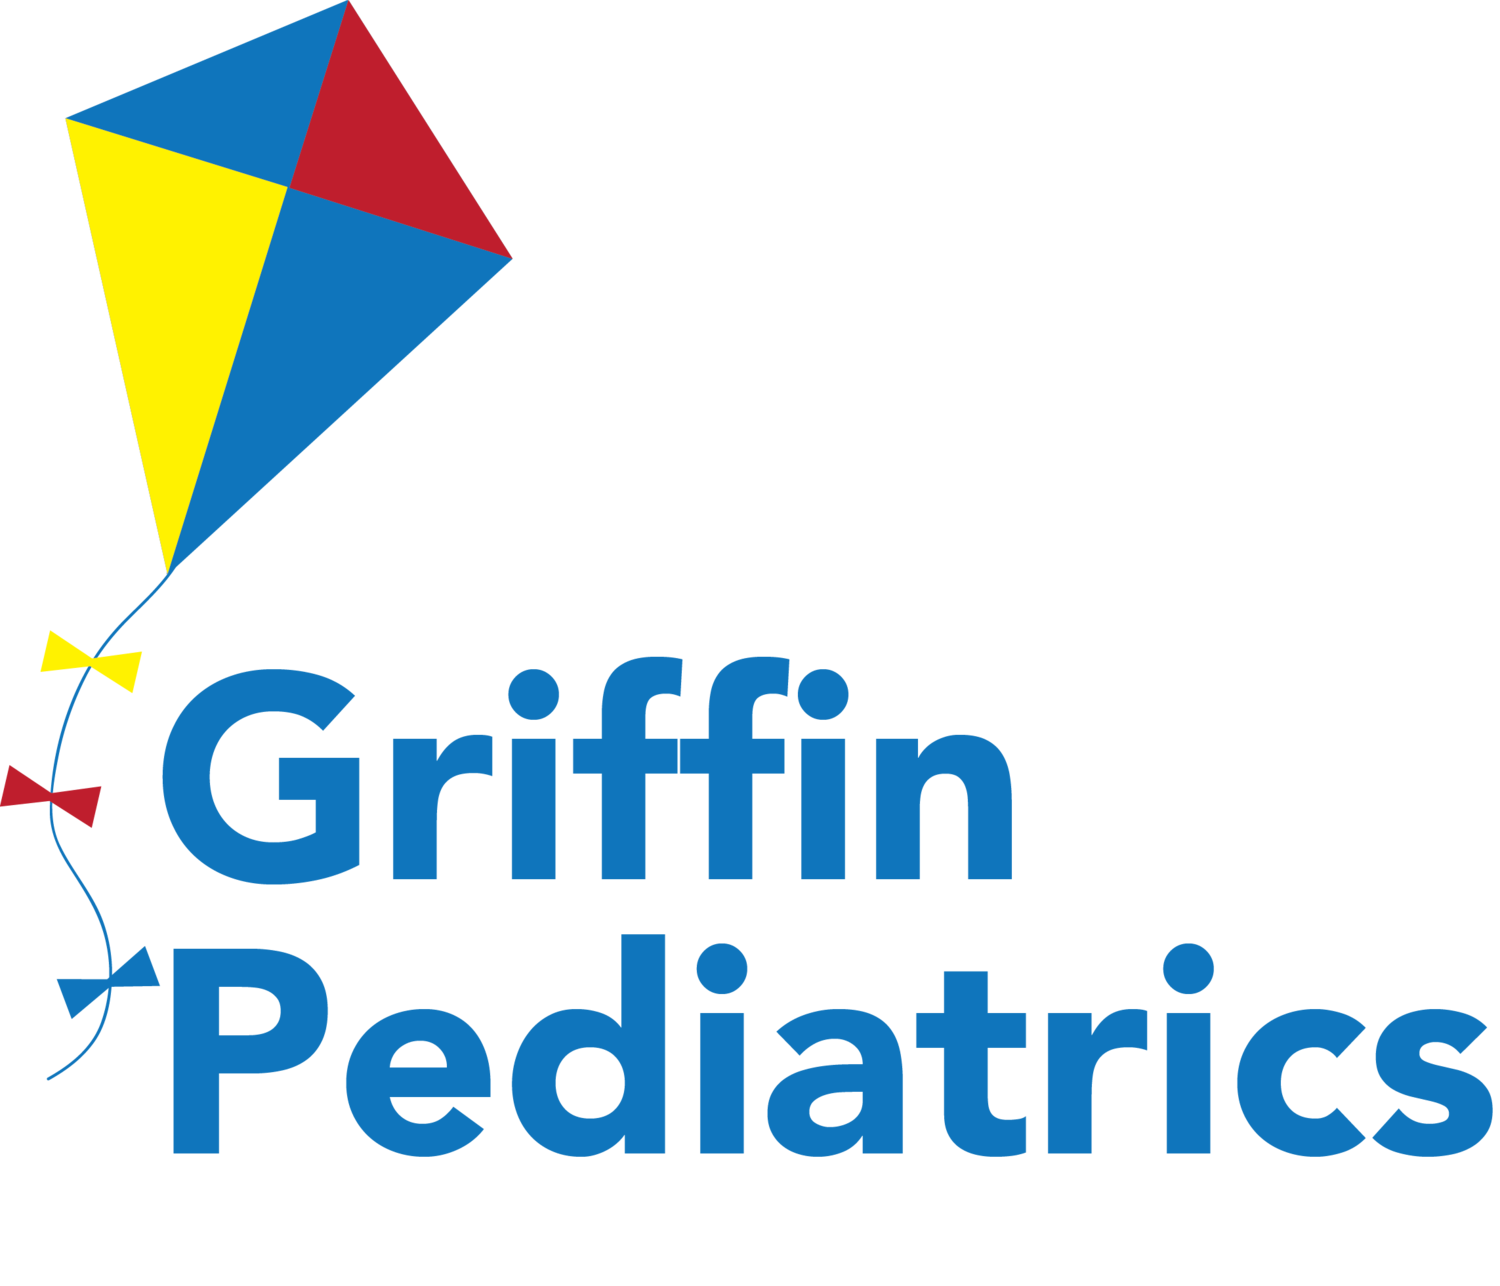 Griffin Pediatrics